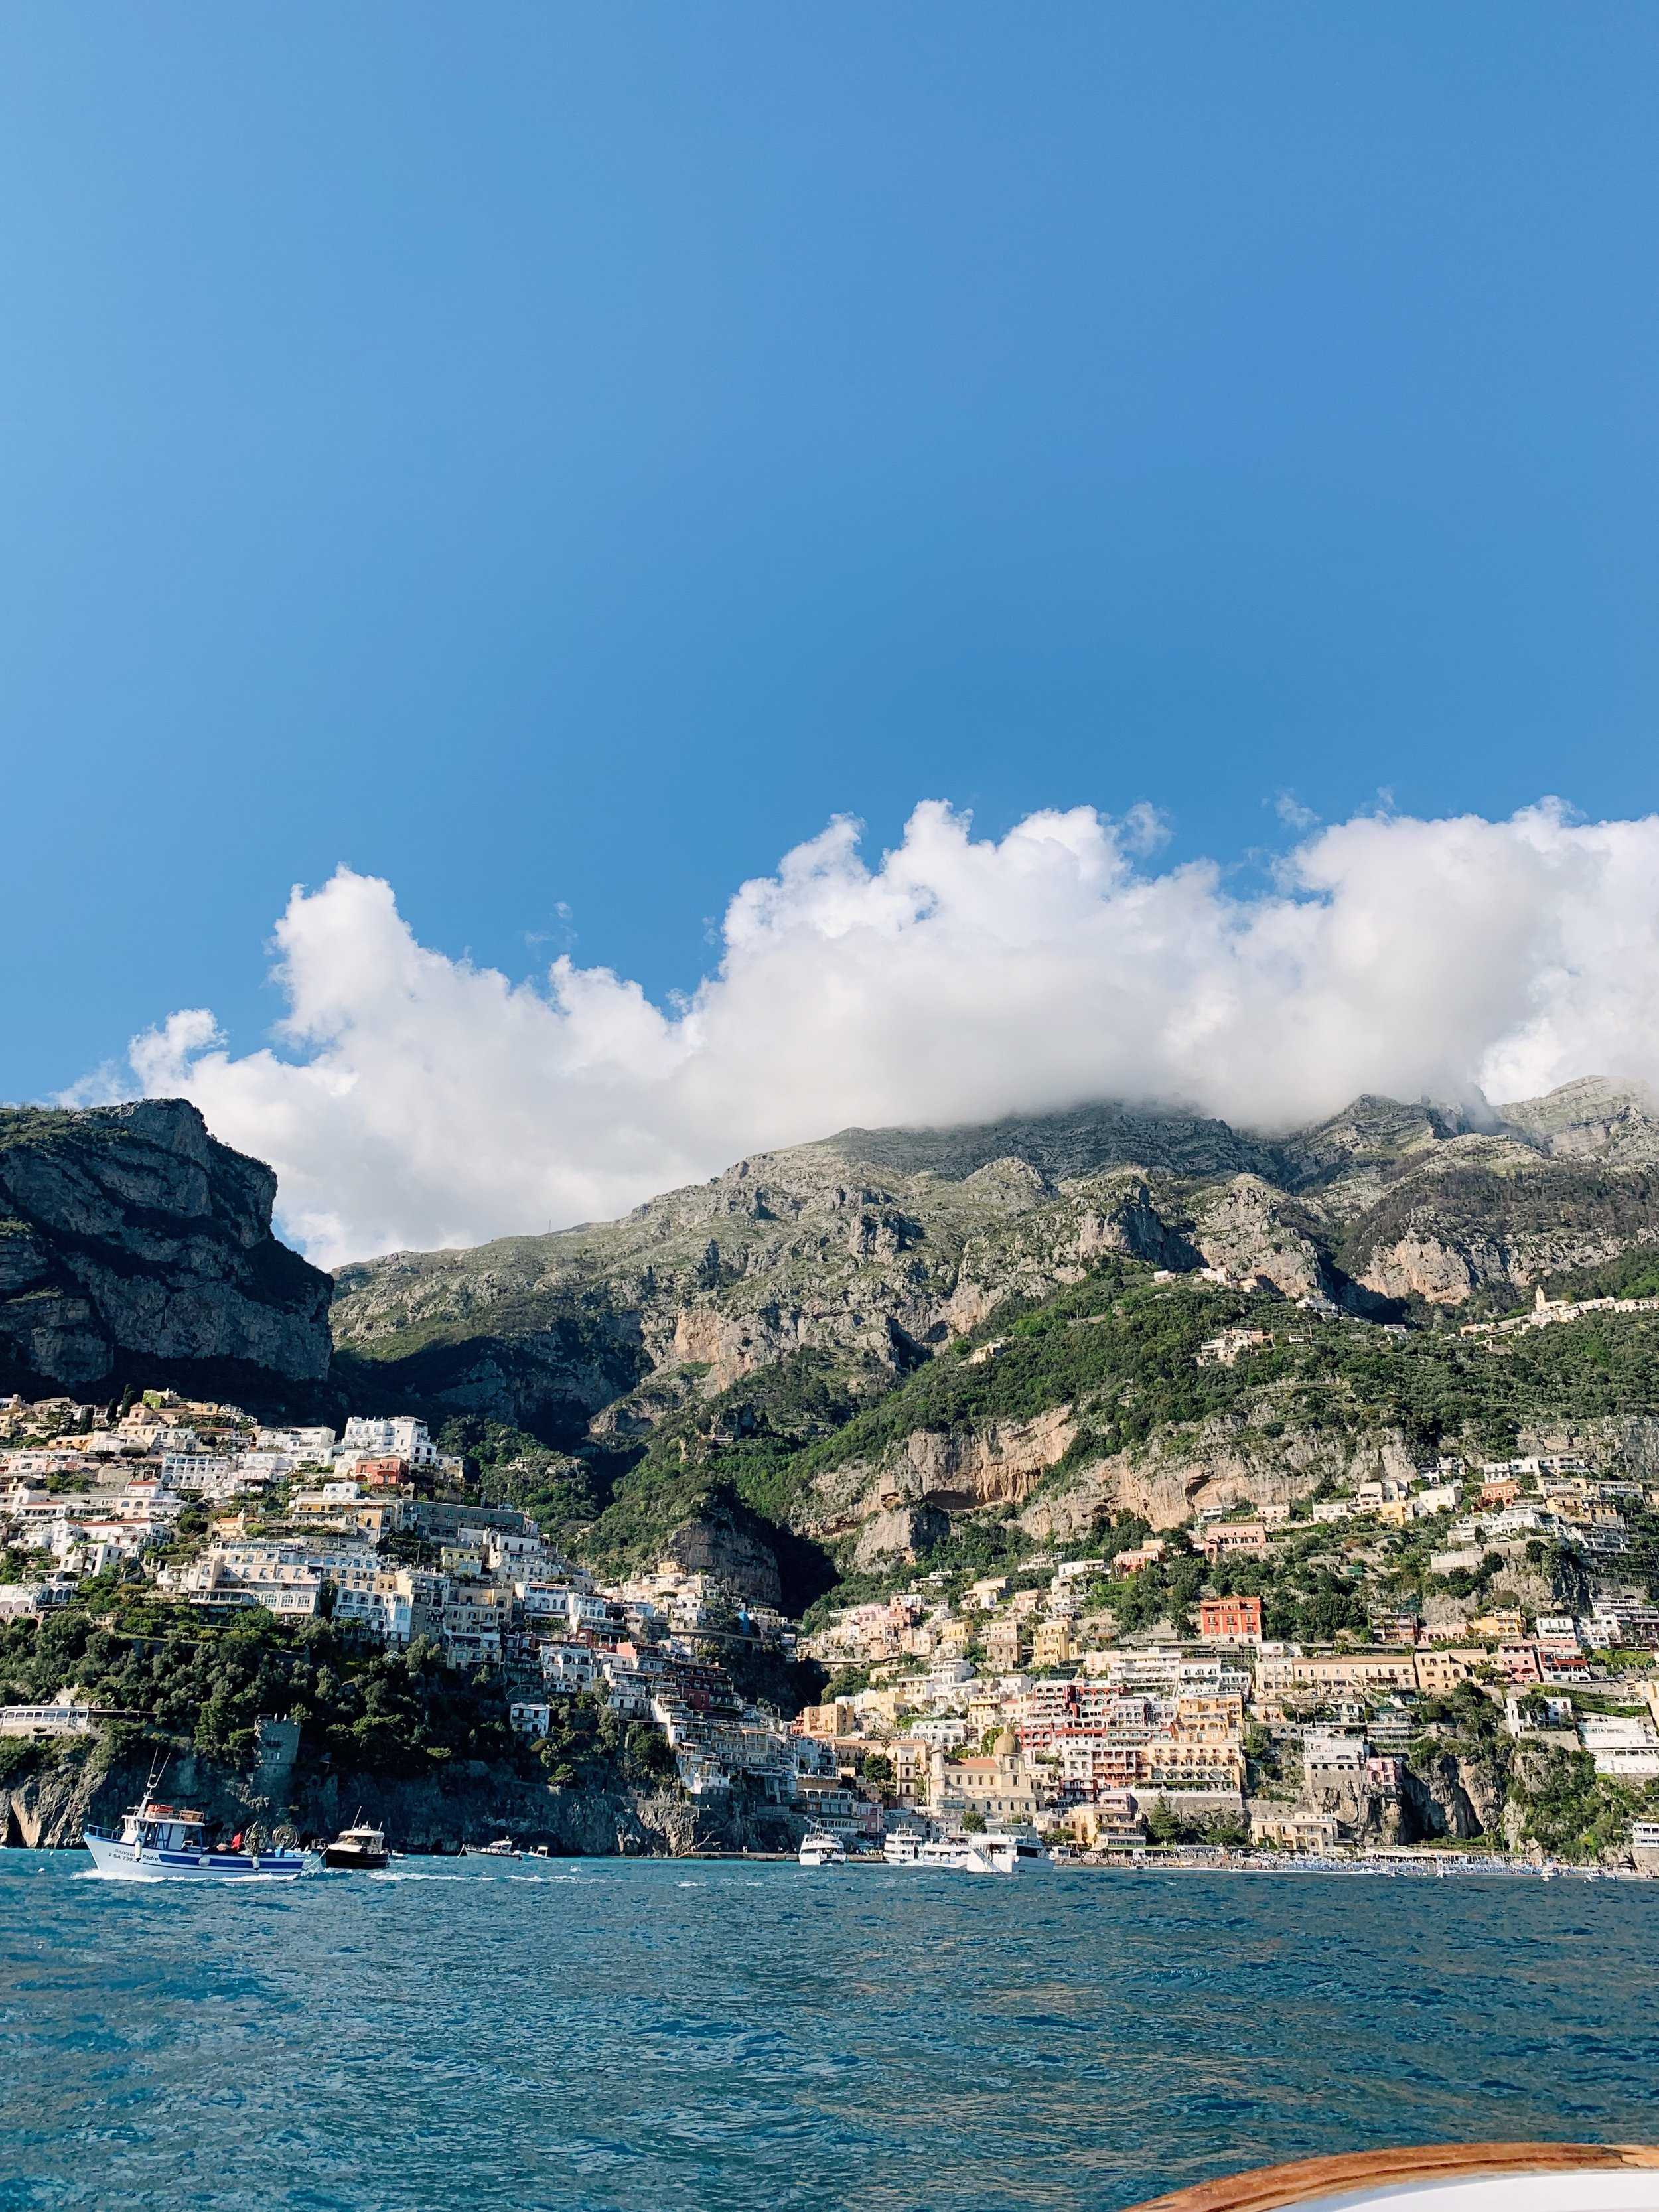 View of Positano from the water with  Positano Boats.